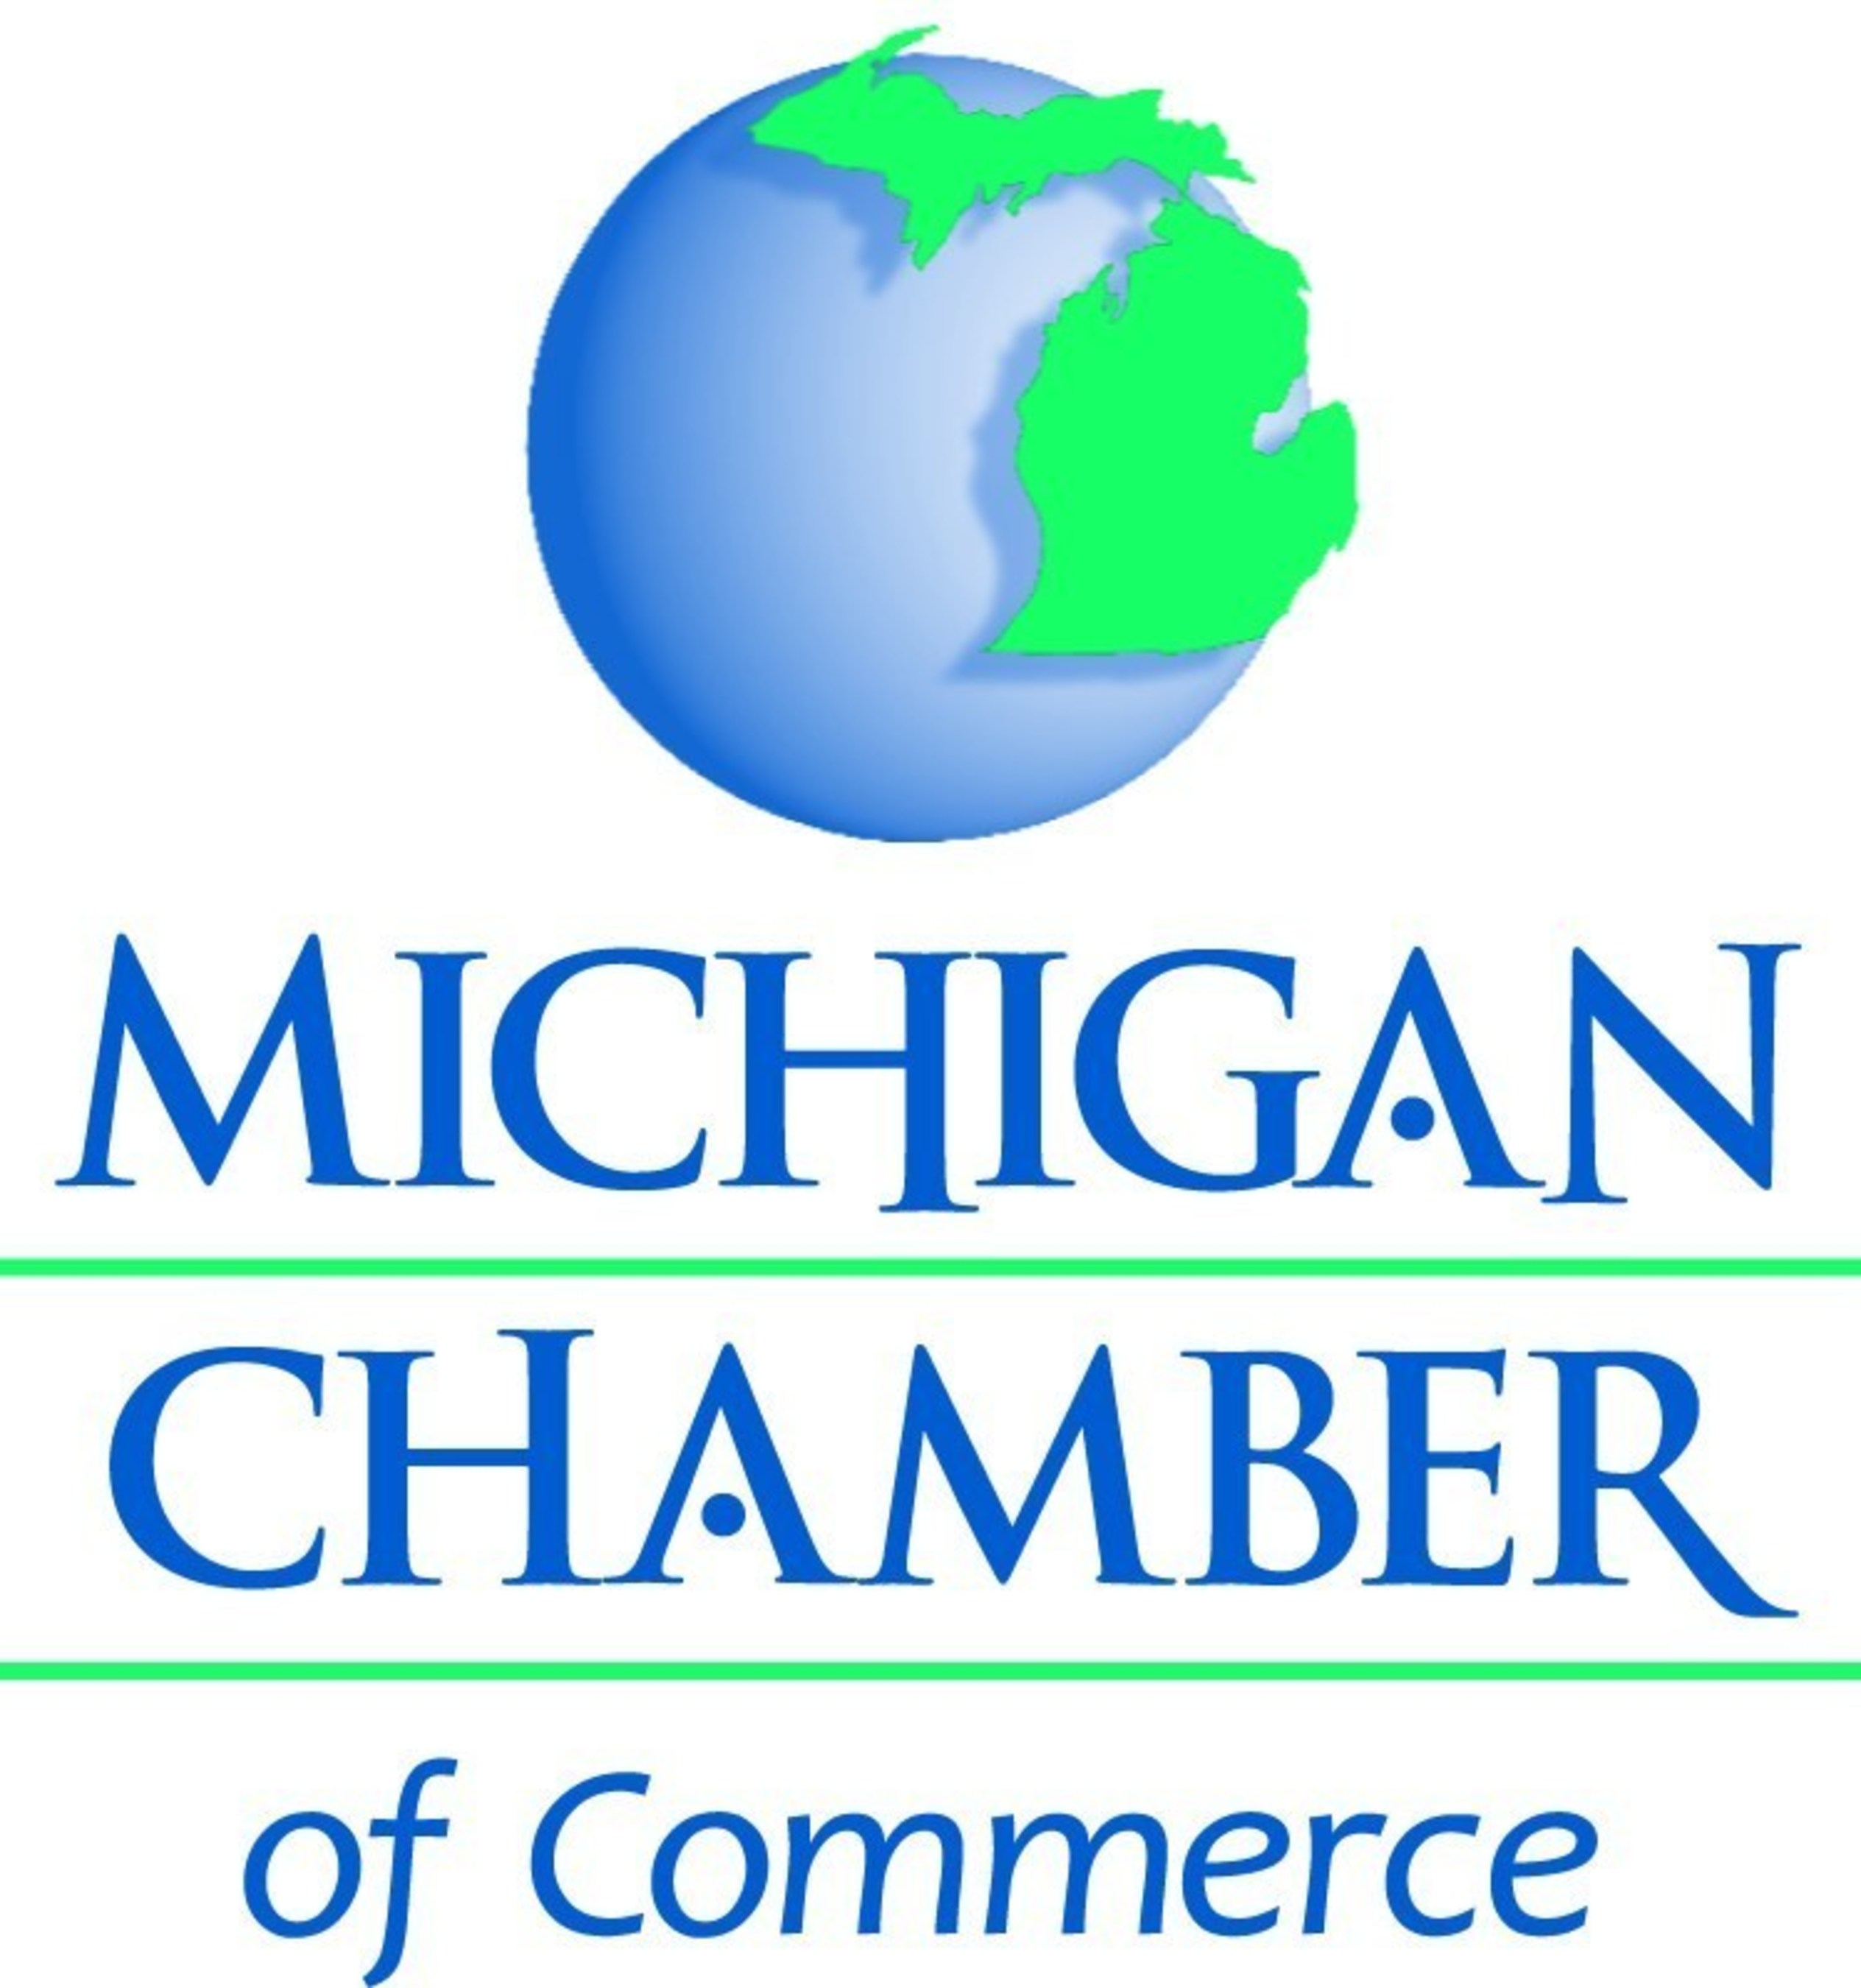 The Michigan Chamber of Commerce is a statewide business organization representing approximately 6,600 ...